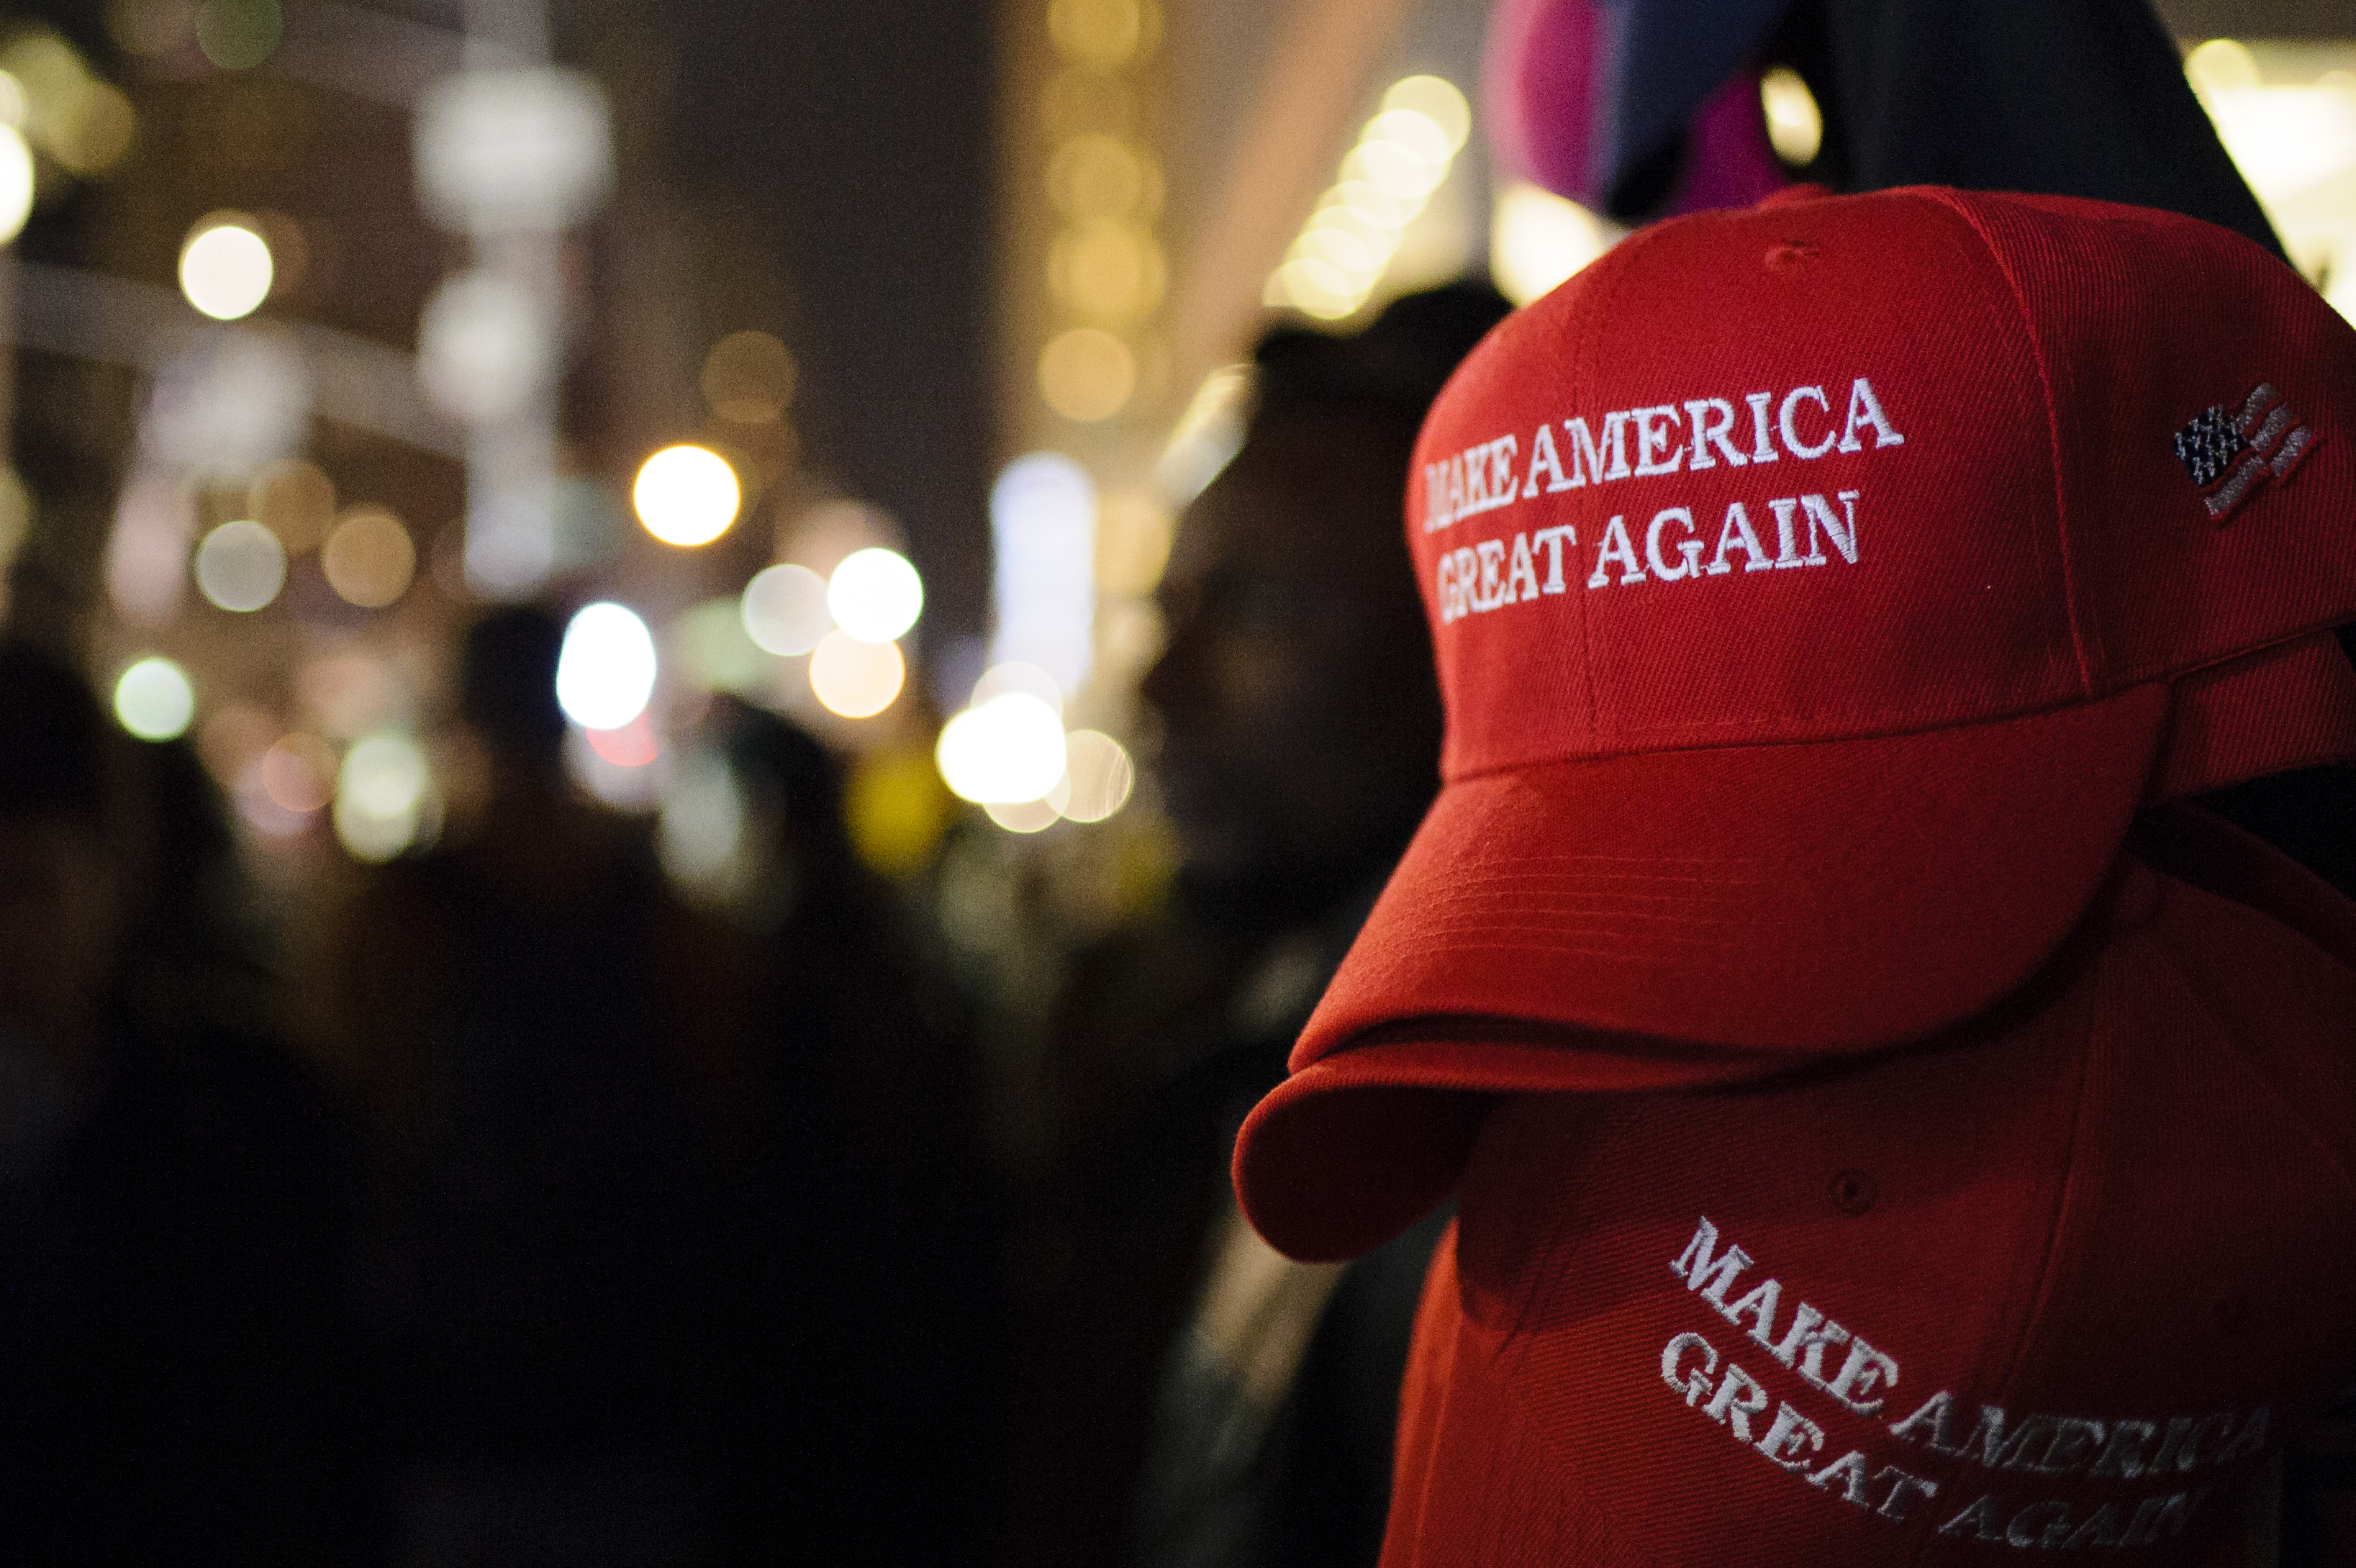 Make America Great Again  red baseball caps, signature headwear of the Donald Trump campaign and its supporters, stand on sale on 6th Avenue in Midtown Manhattan.